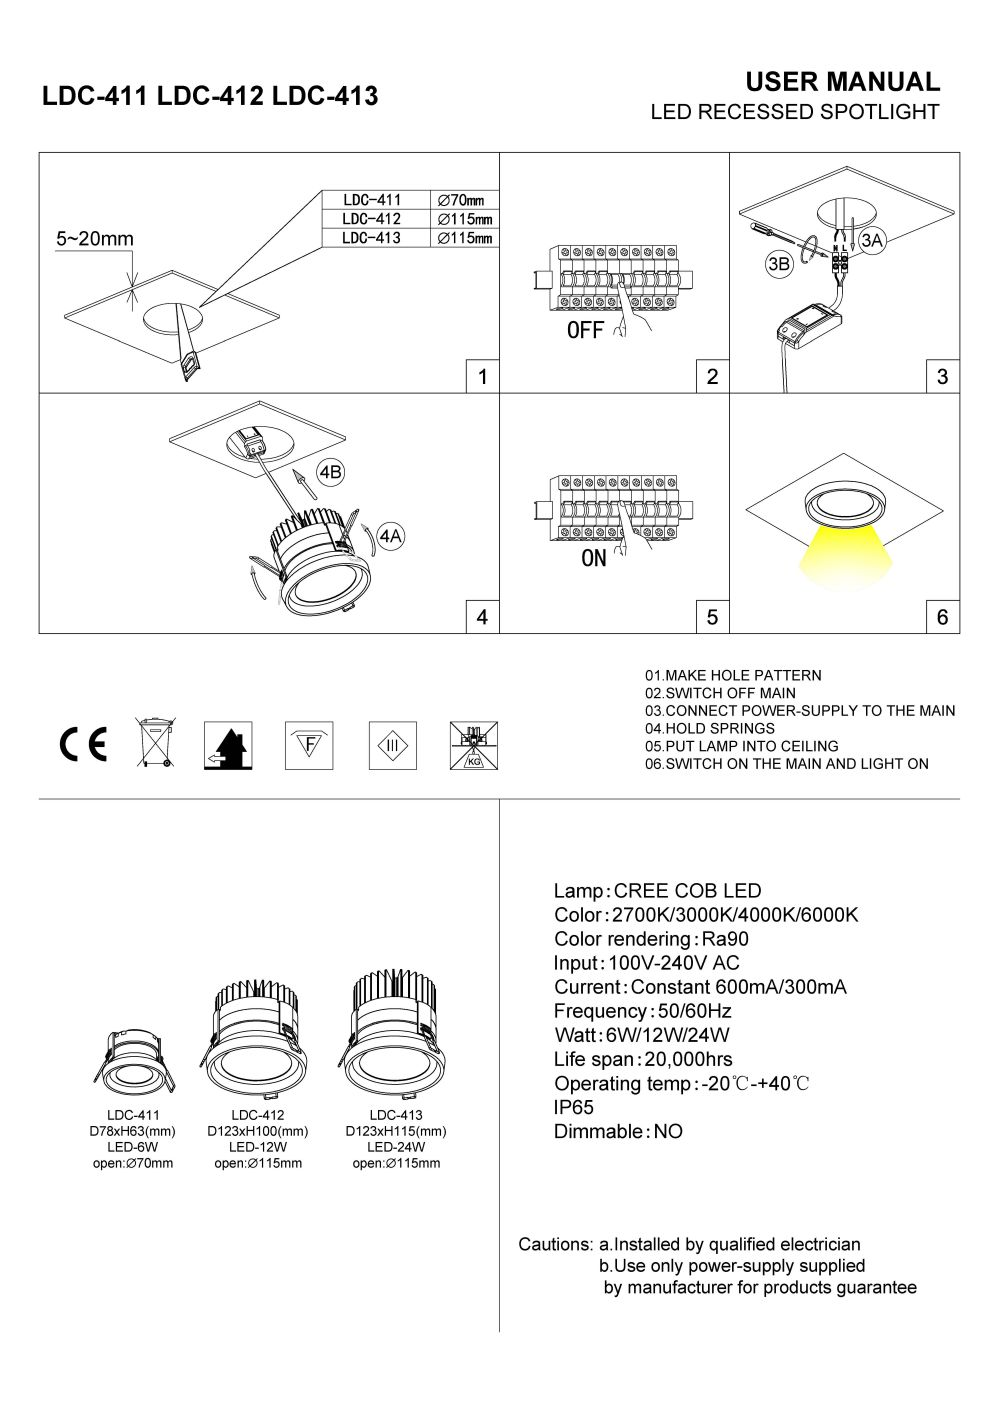 LDC-411 LDC-412 LDC-413 Black IP65 rated LED Downlight fitting install guide